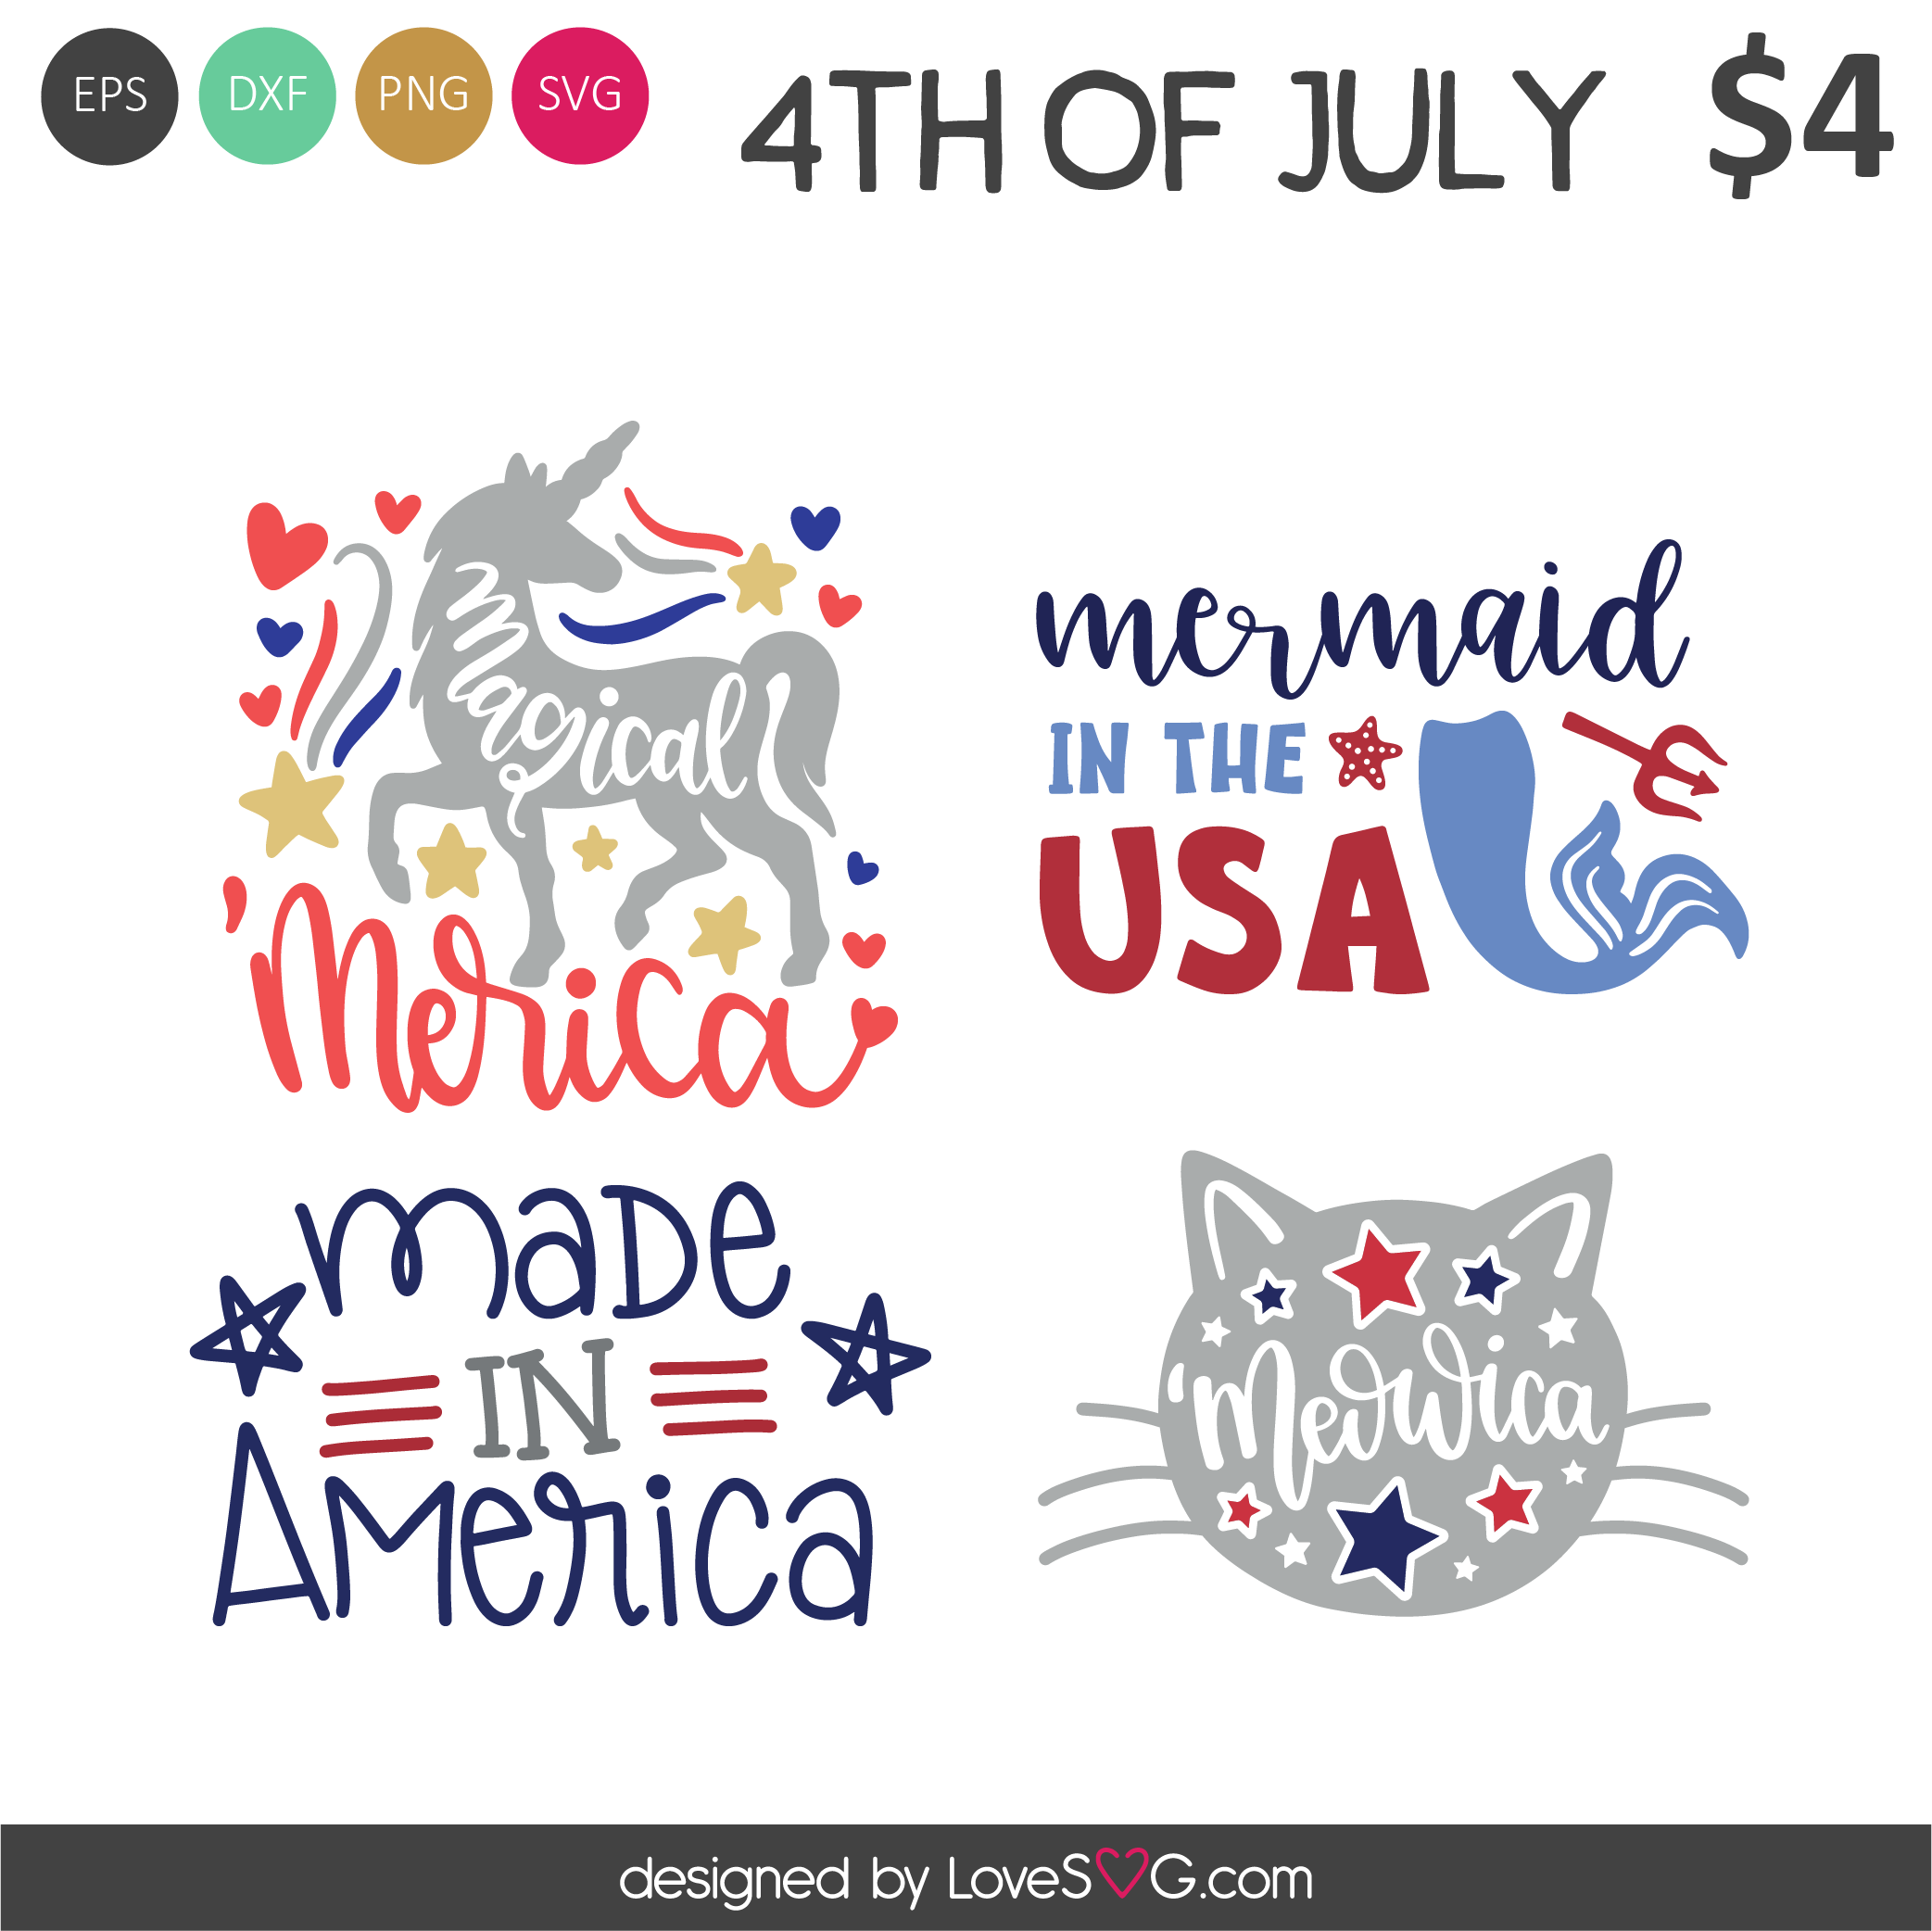 Made In America Svg Cut Files Lovesvg Com